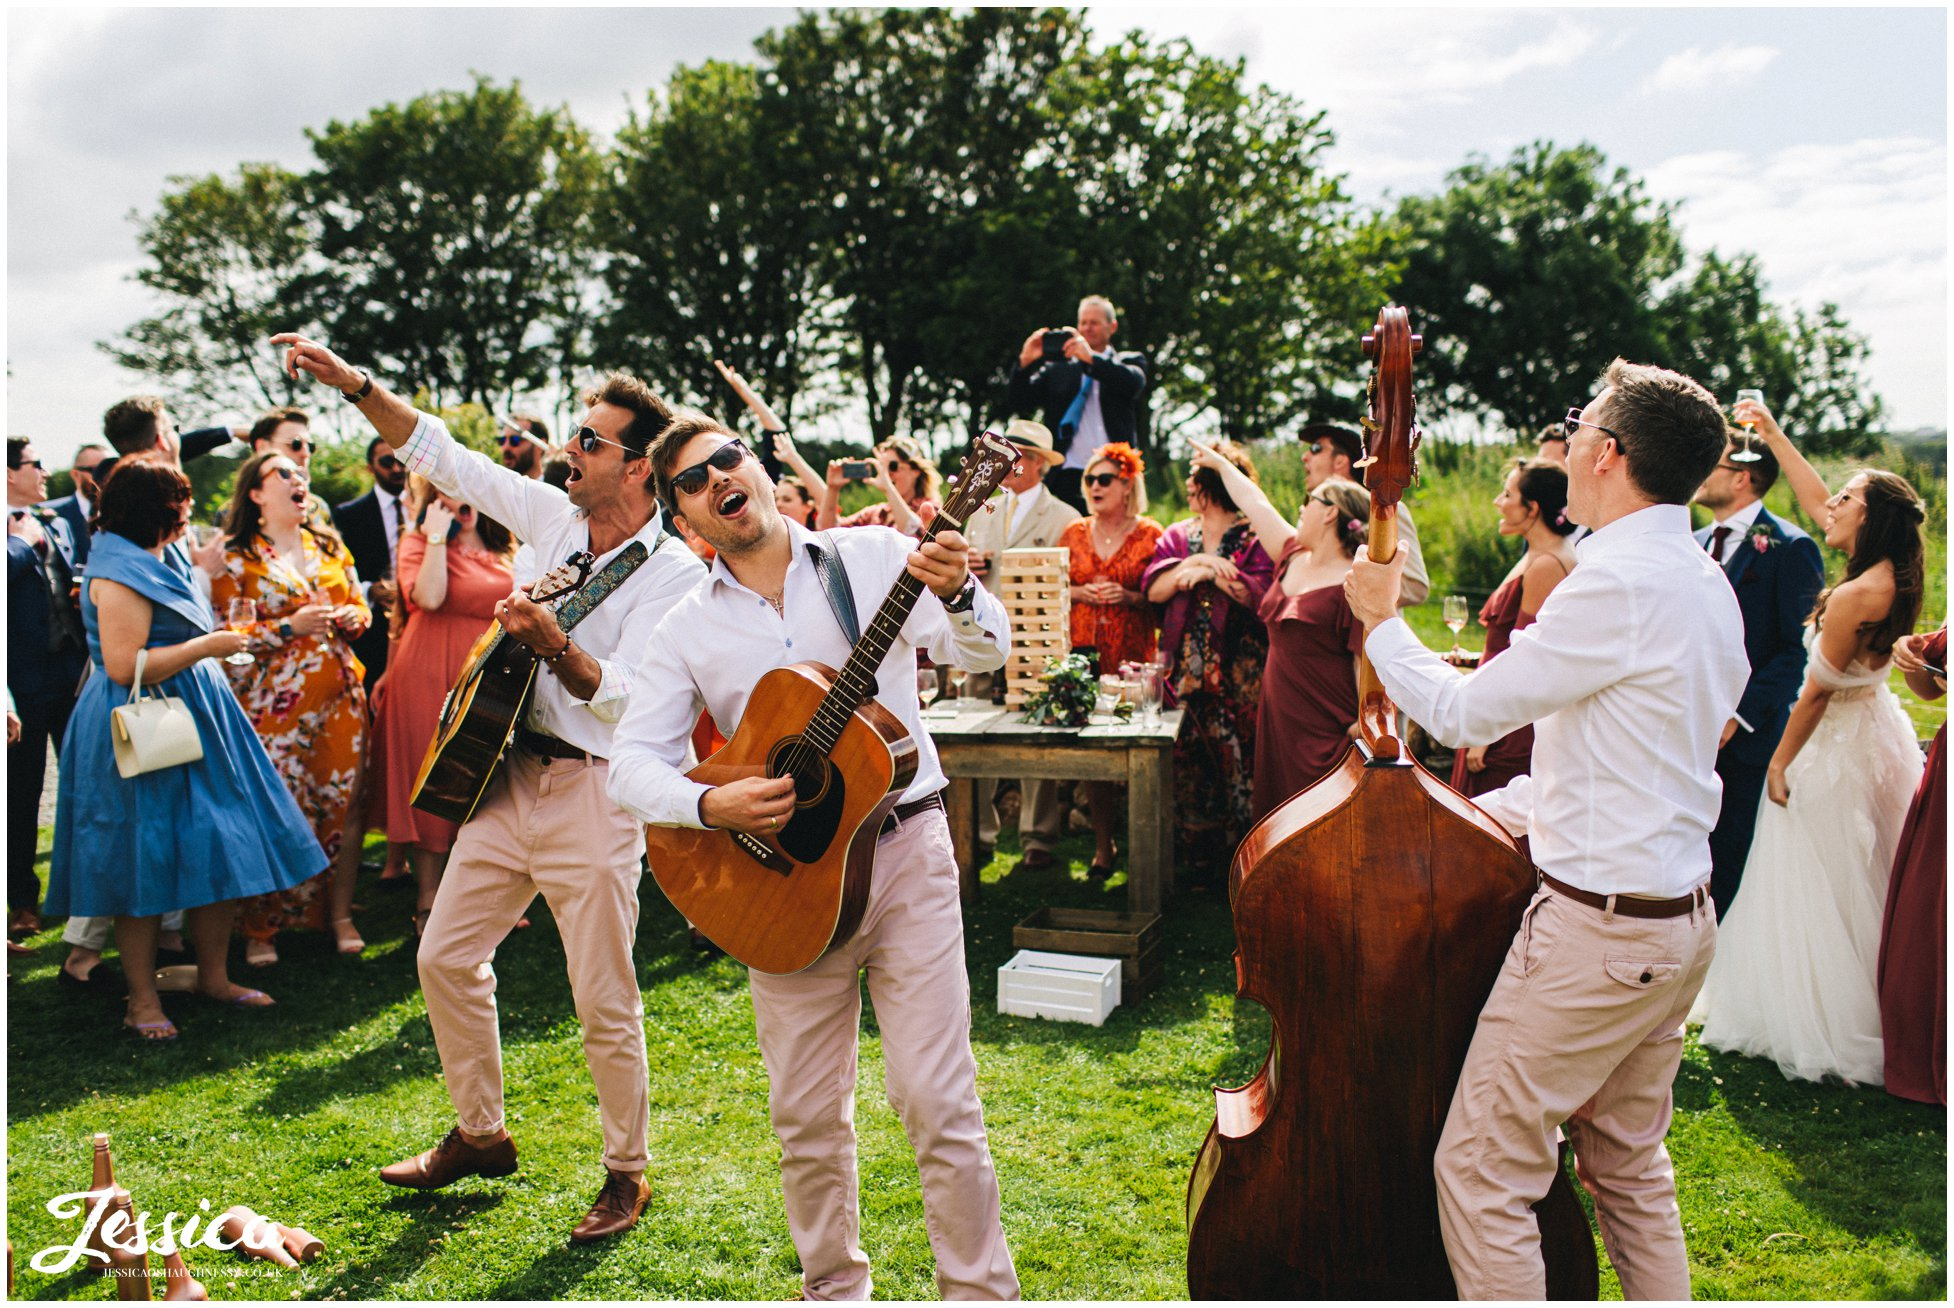 wedding band plays to the guests outside the tipi